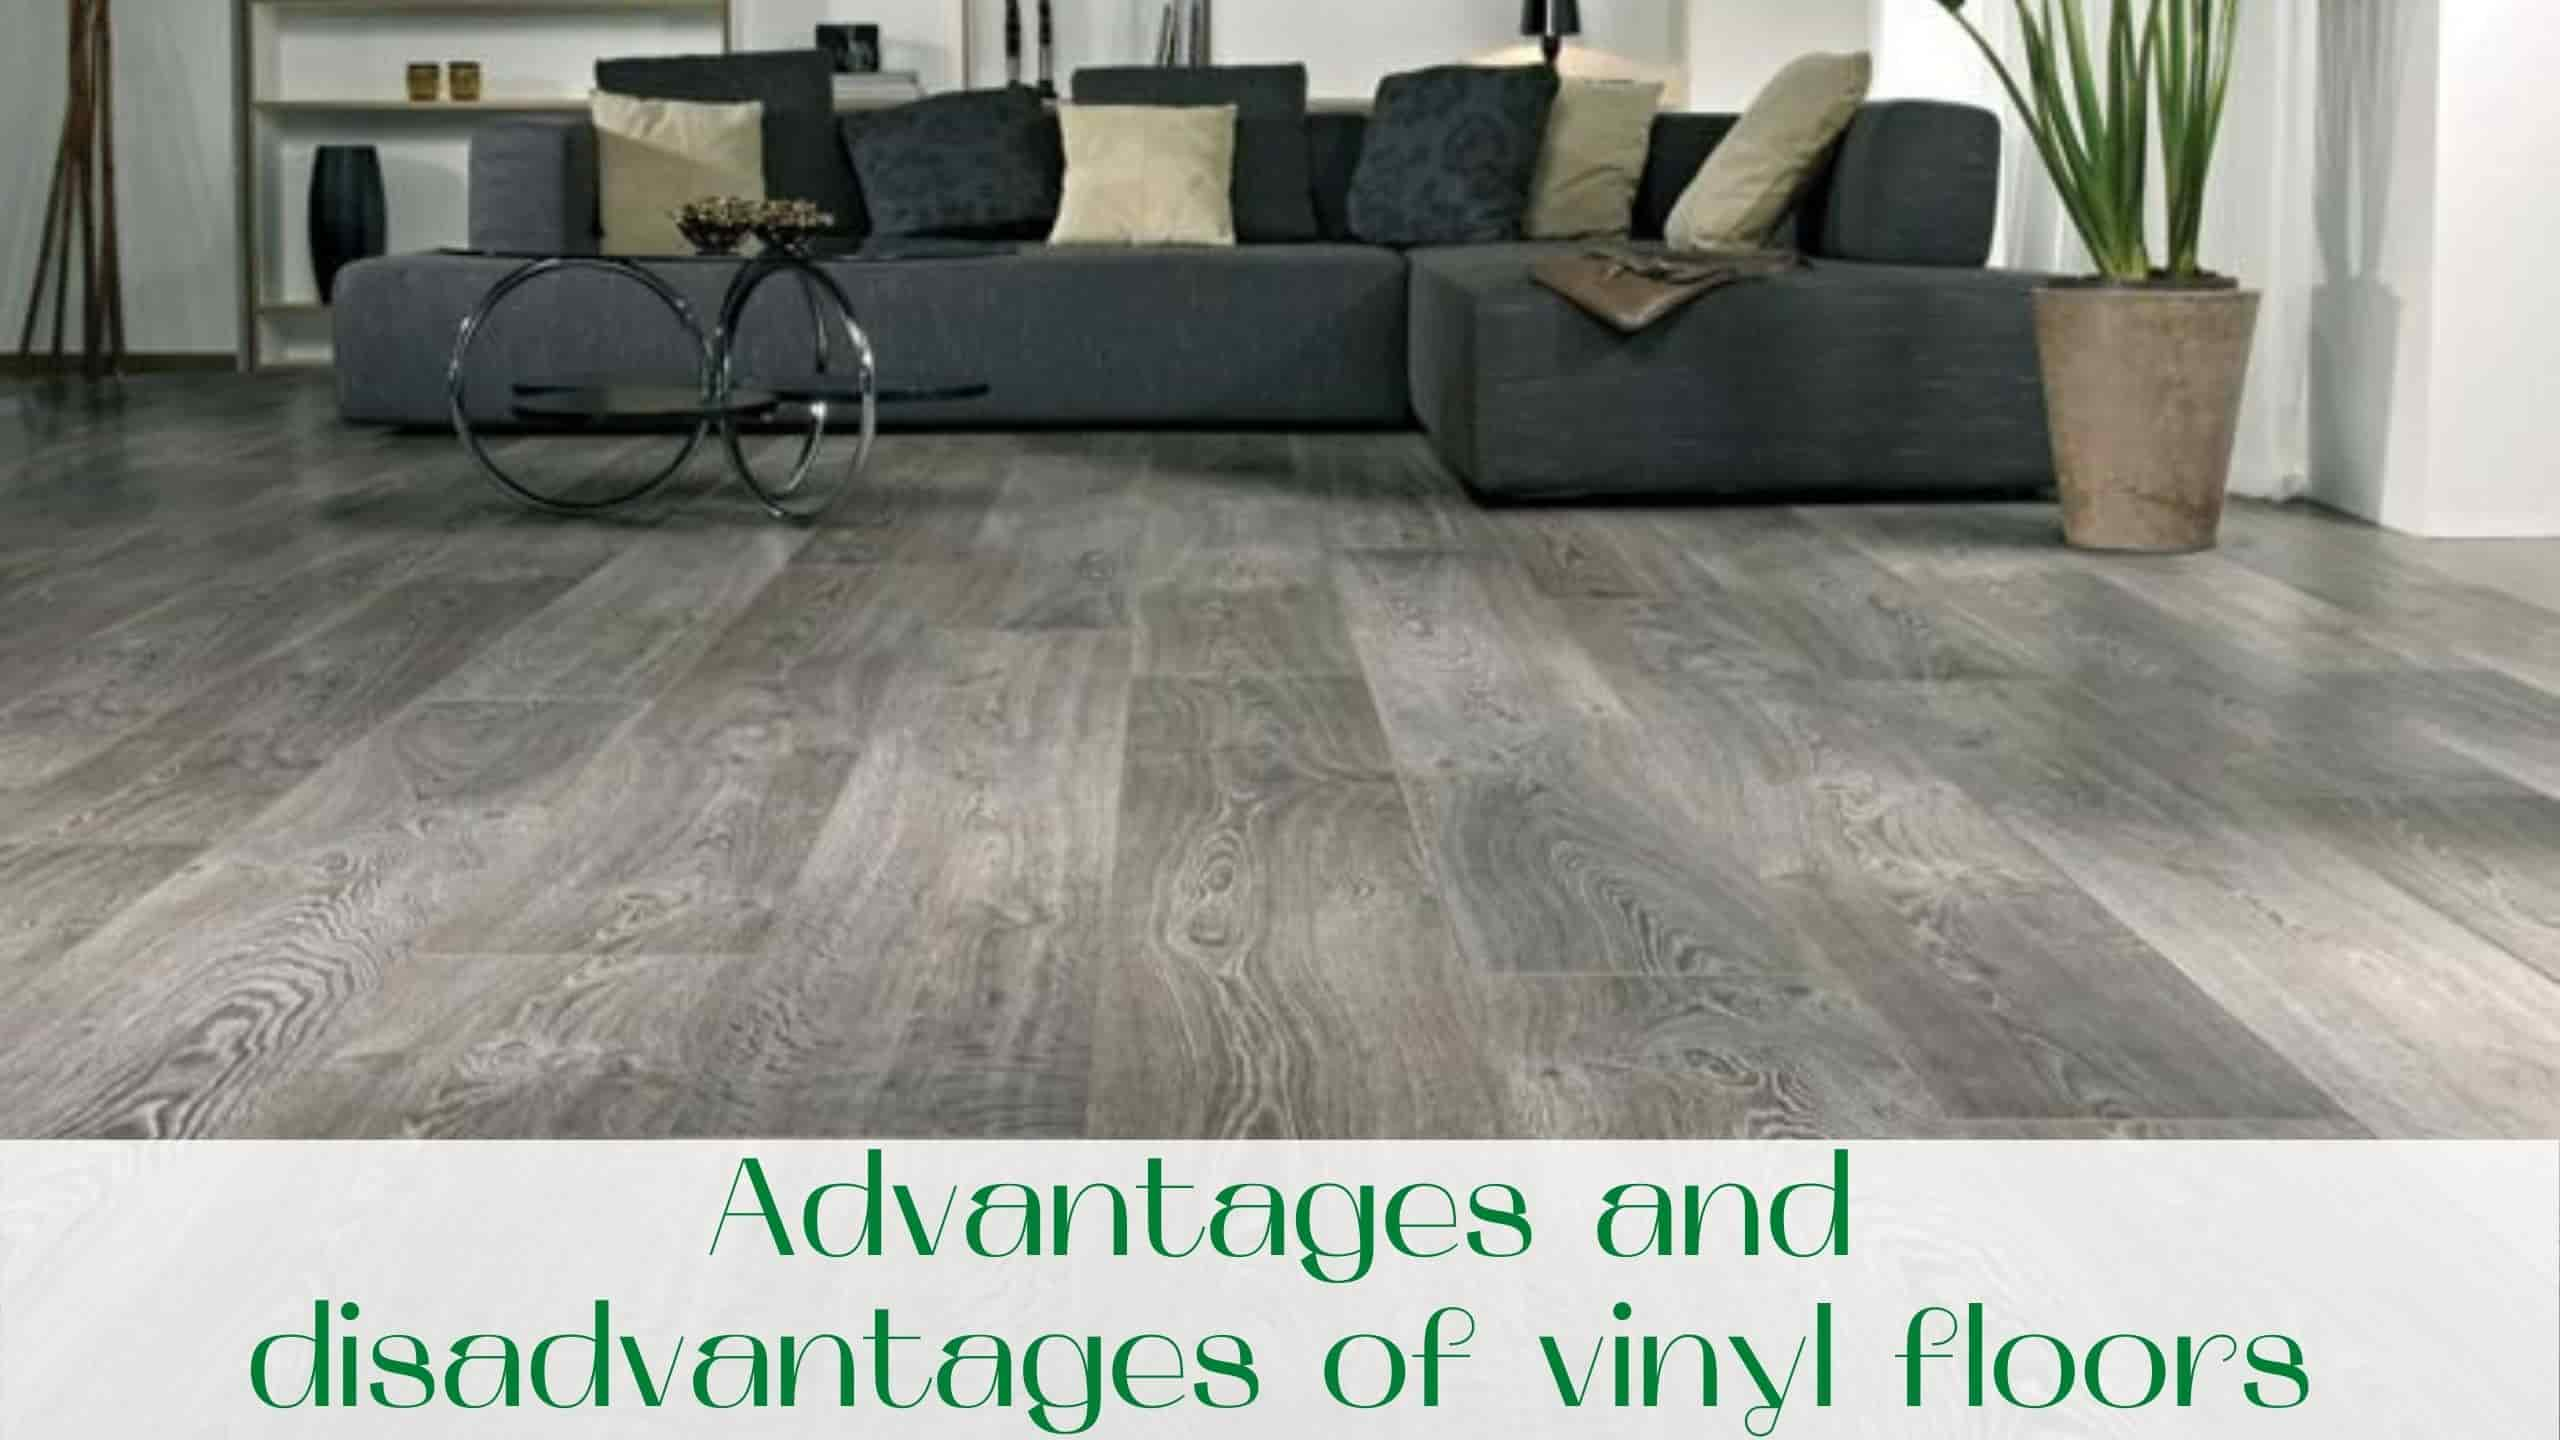 image-Advantages-and-disadvantages-of-vinyl-floors